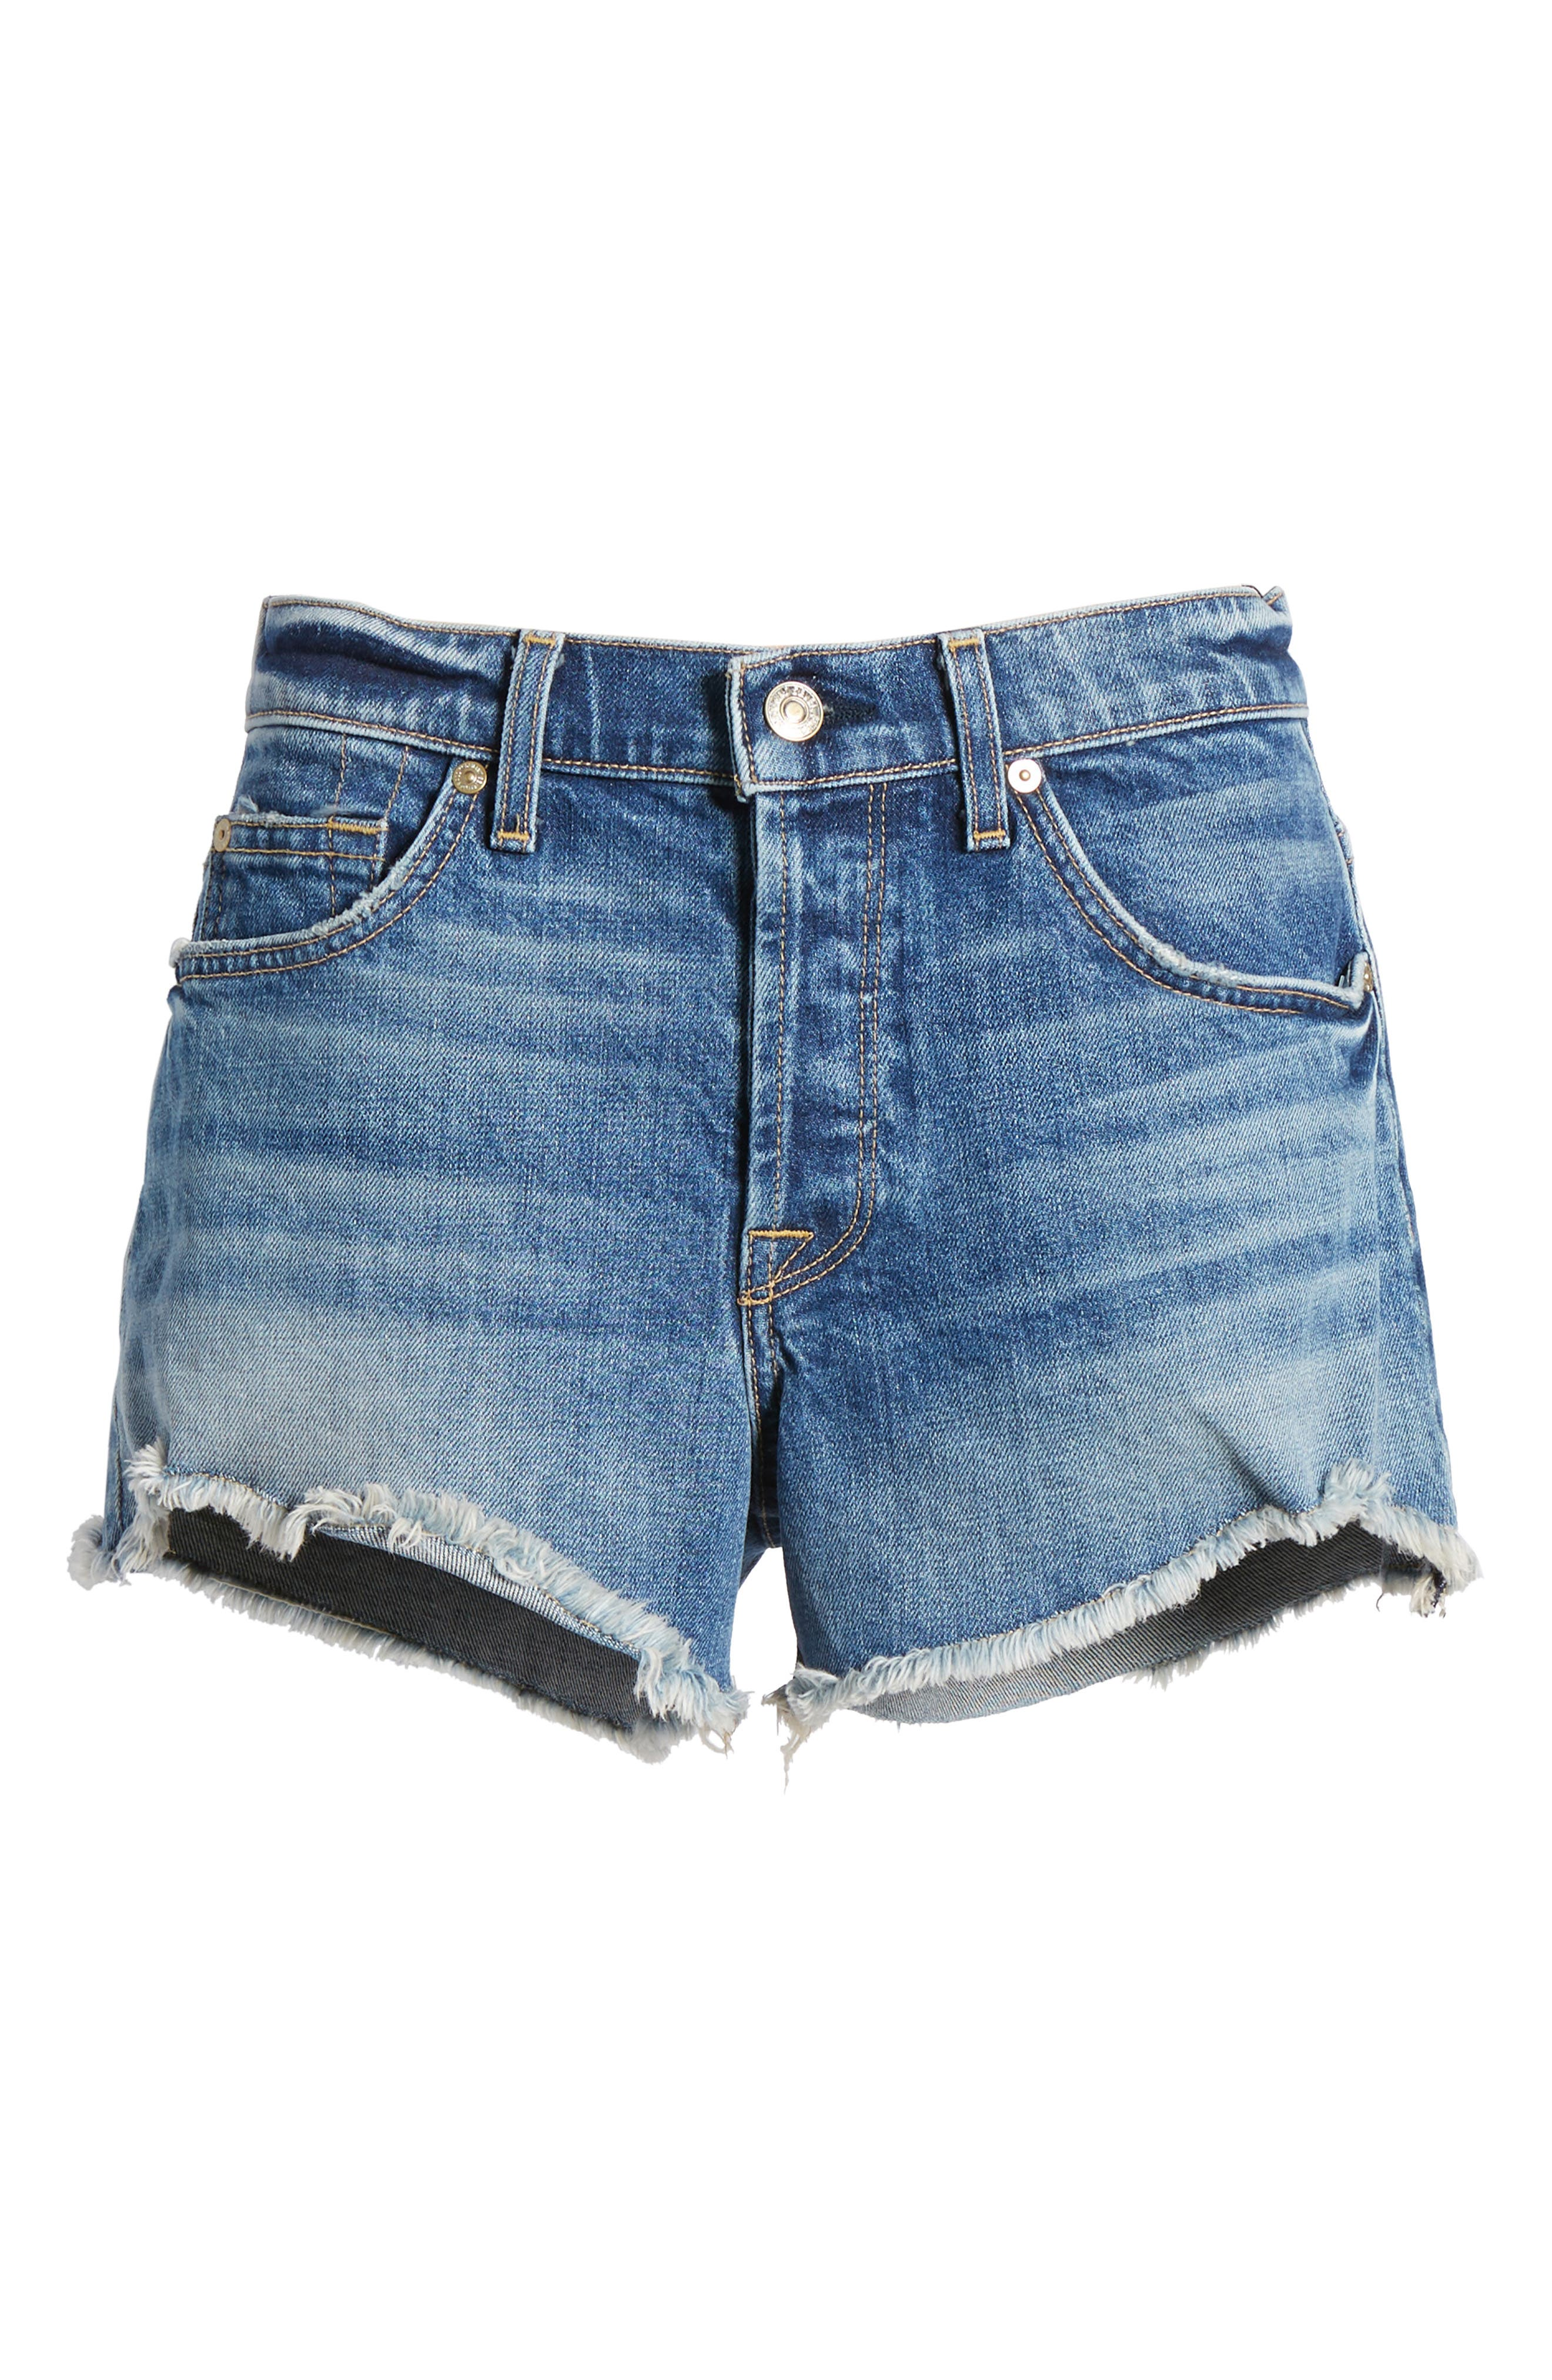 High Waist Cutoff Wave Hem Denim Shorts,                             Alternate thumbnail 7, color,                             400